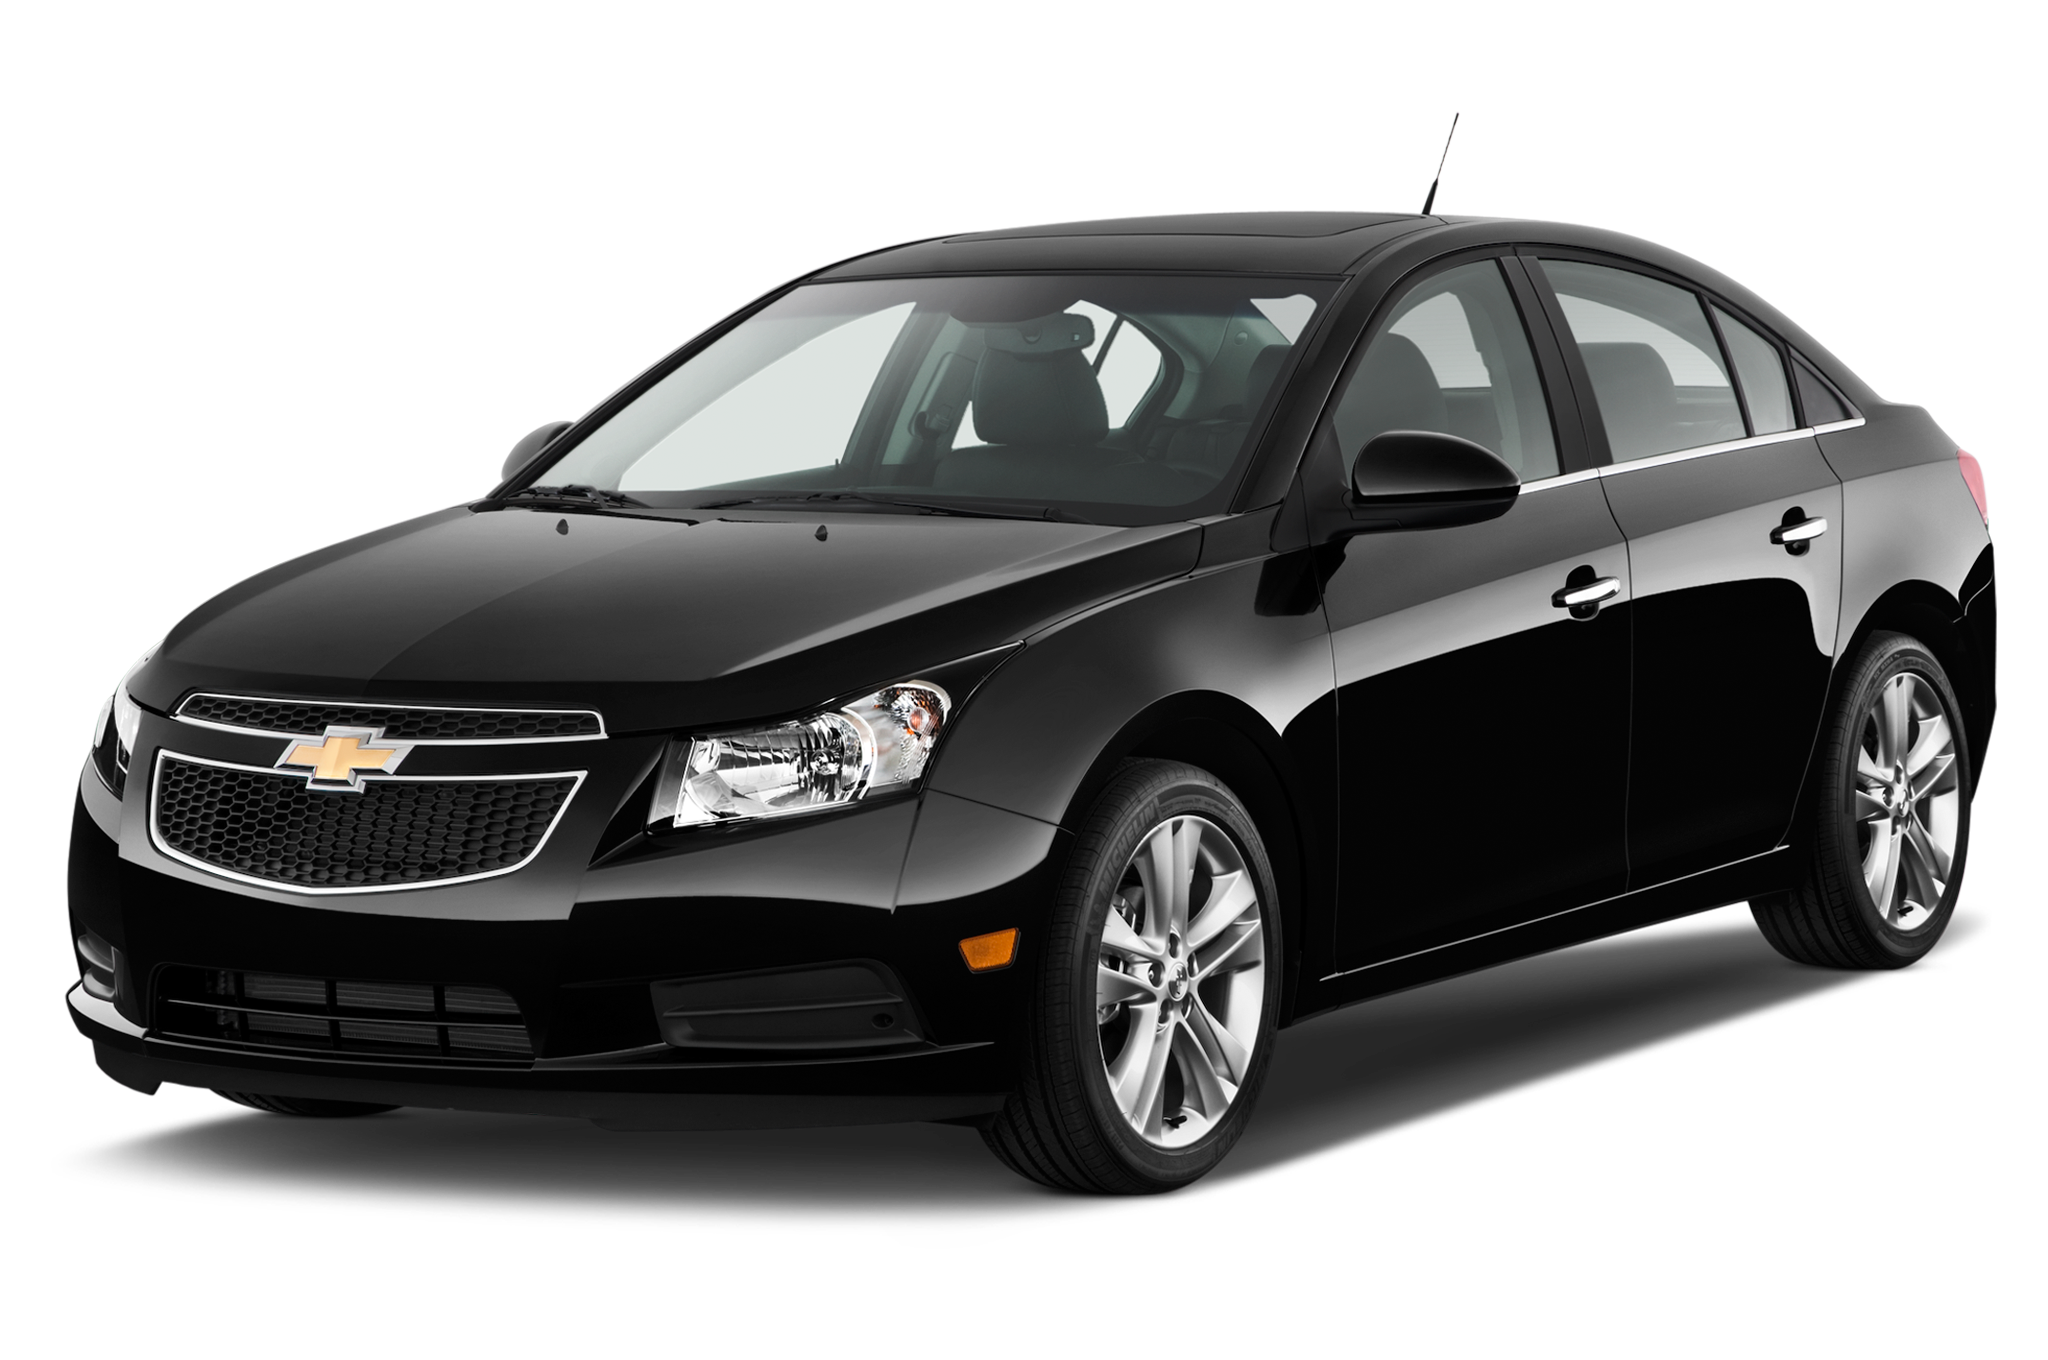 Chevy Cruze Ss >> 2014 Chevrolet Cruze Diesel First Drive - Automobile Magazine